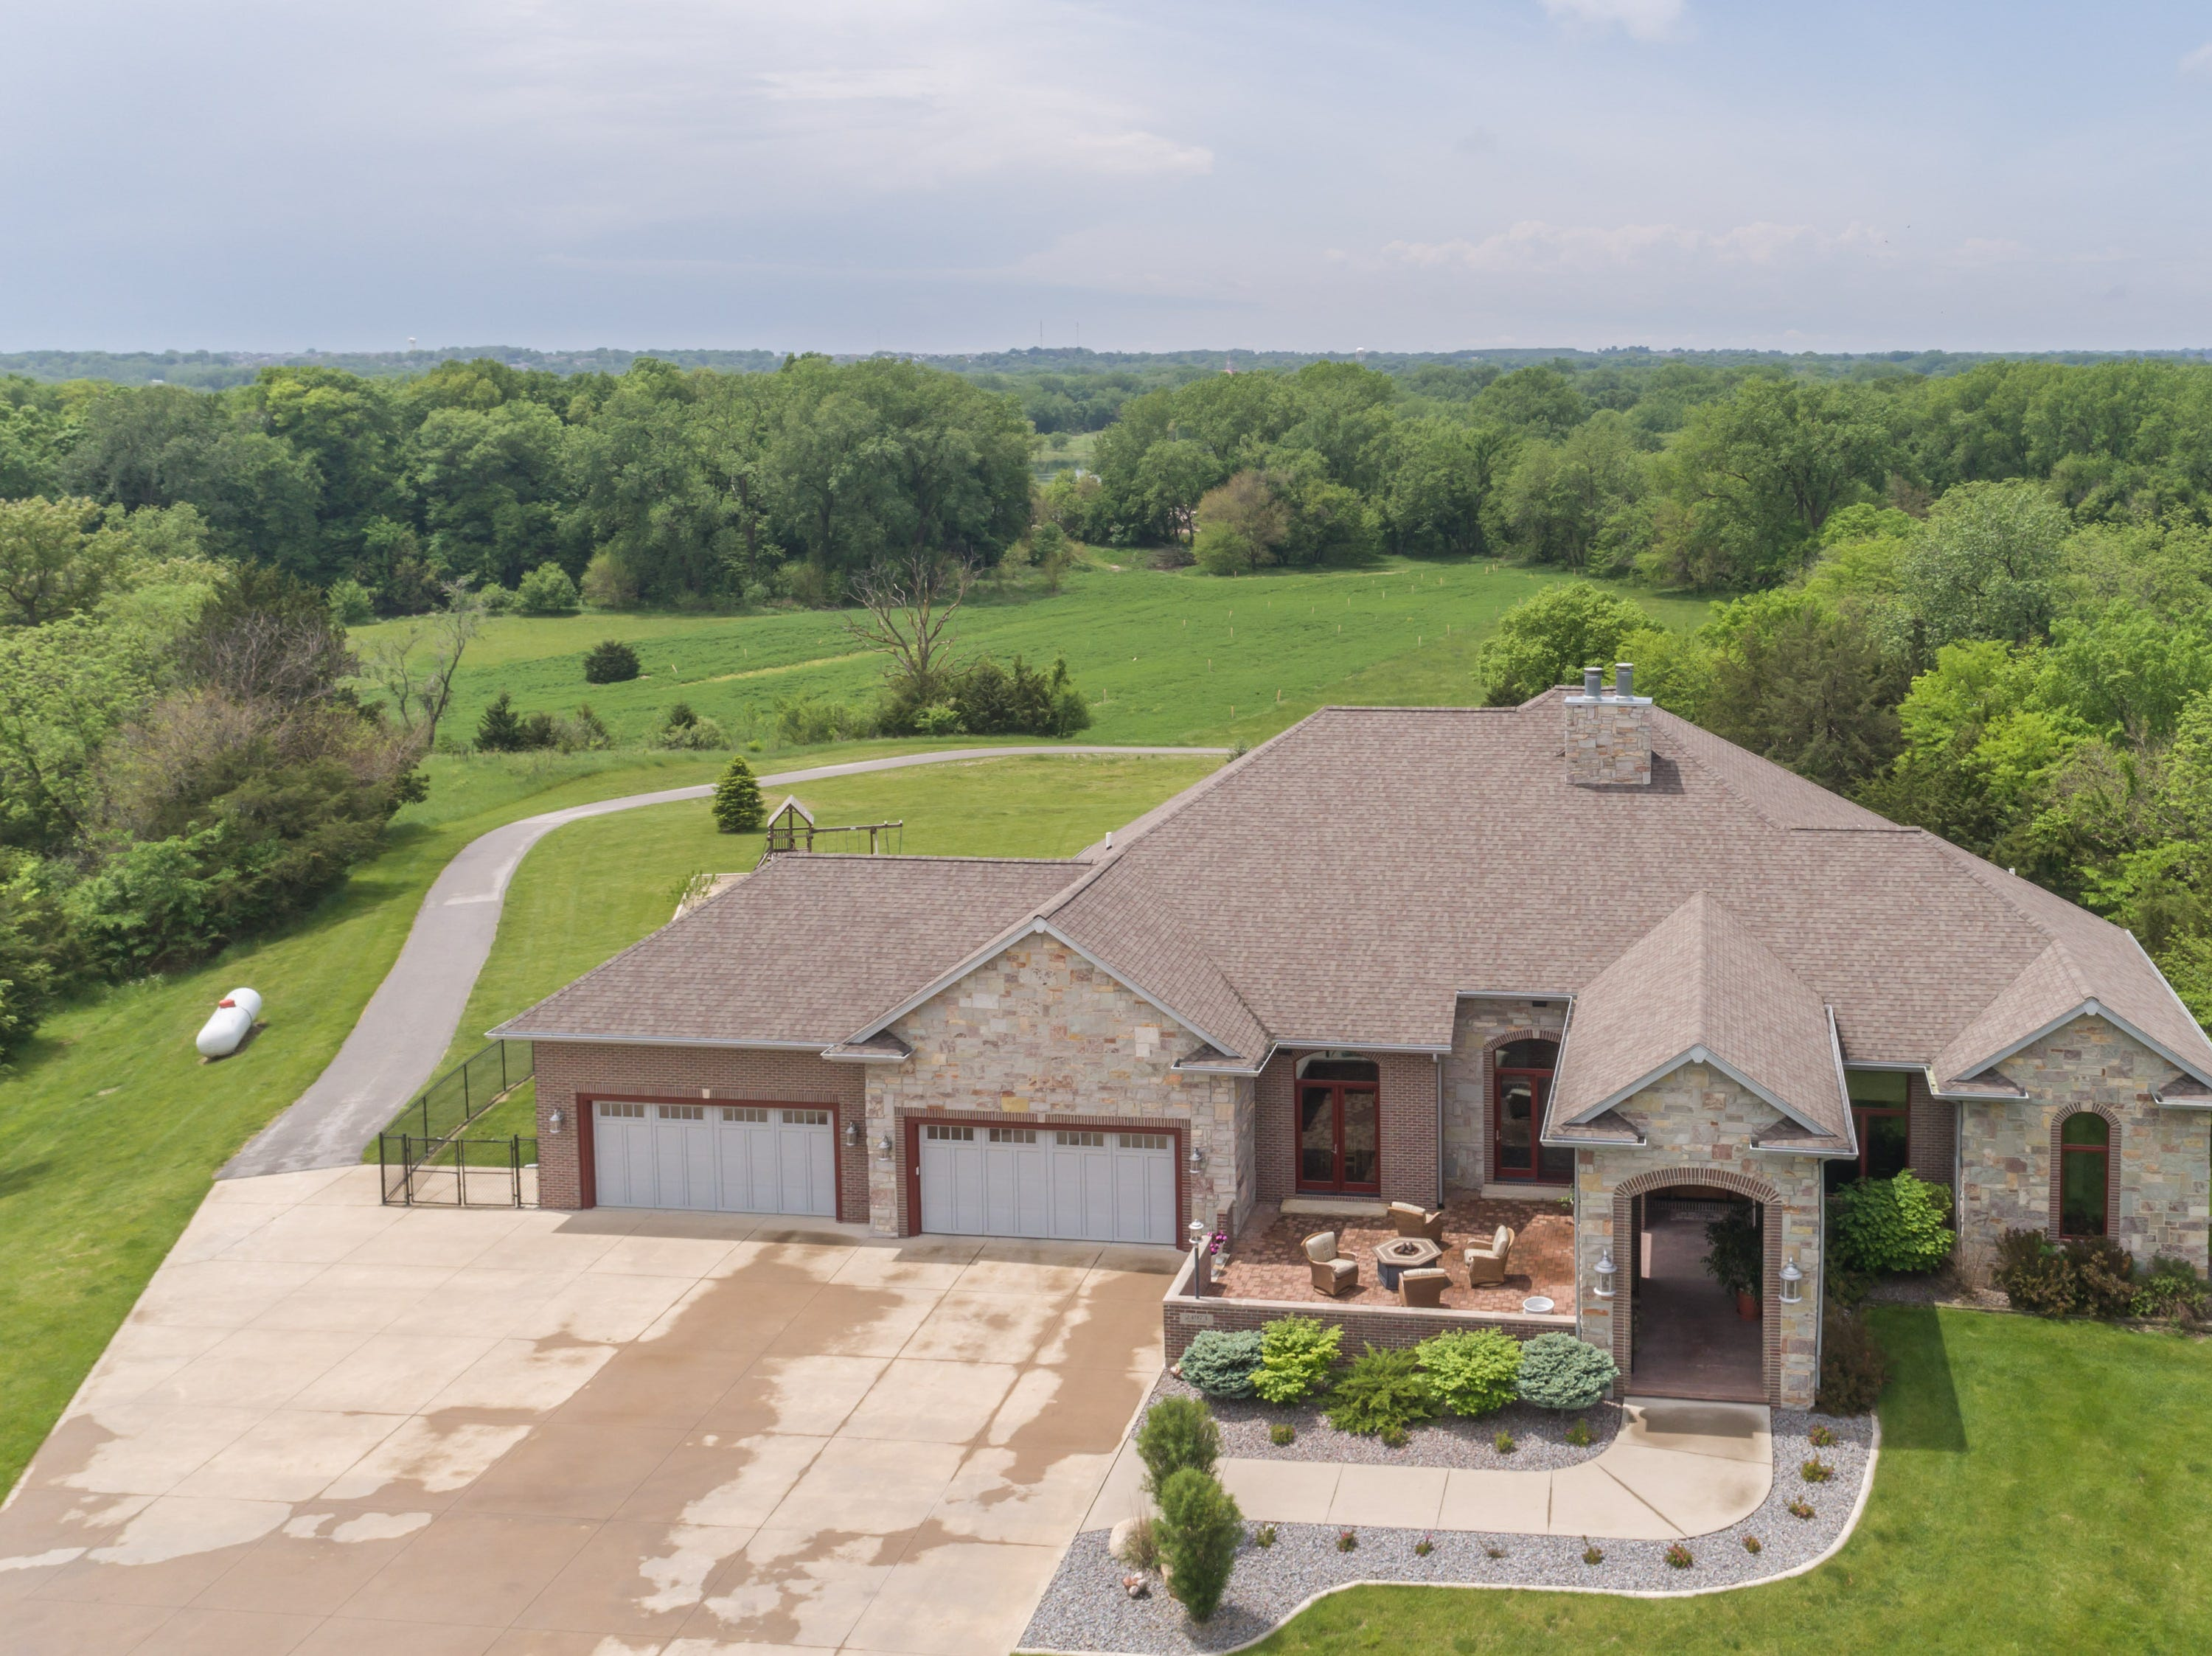 This home on Ridge Road in Adel sold for $1.6 million in 2018. It has four bedrooms, three bathrooms and sits on 21 acres bordering the Raccoon River and Hillcrest Golf Course.